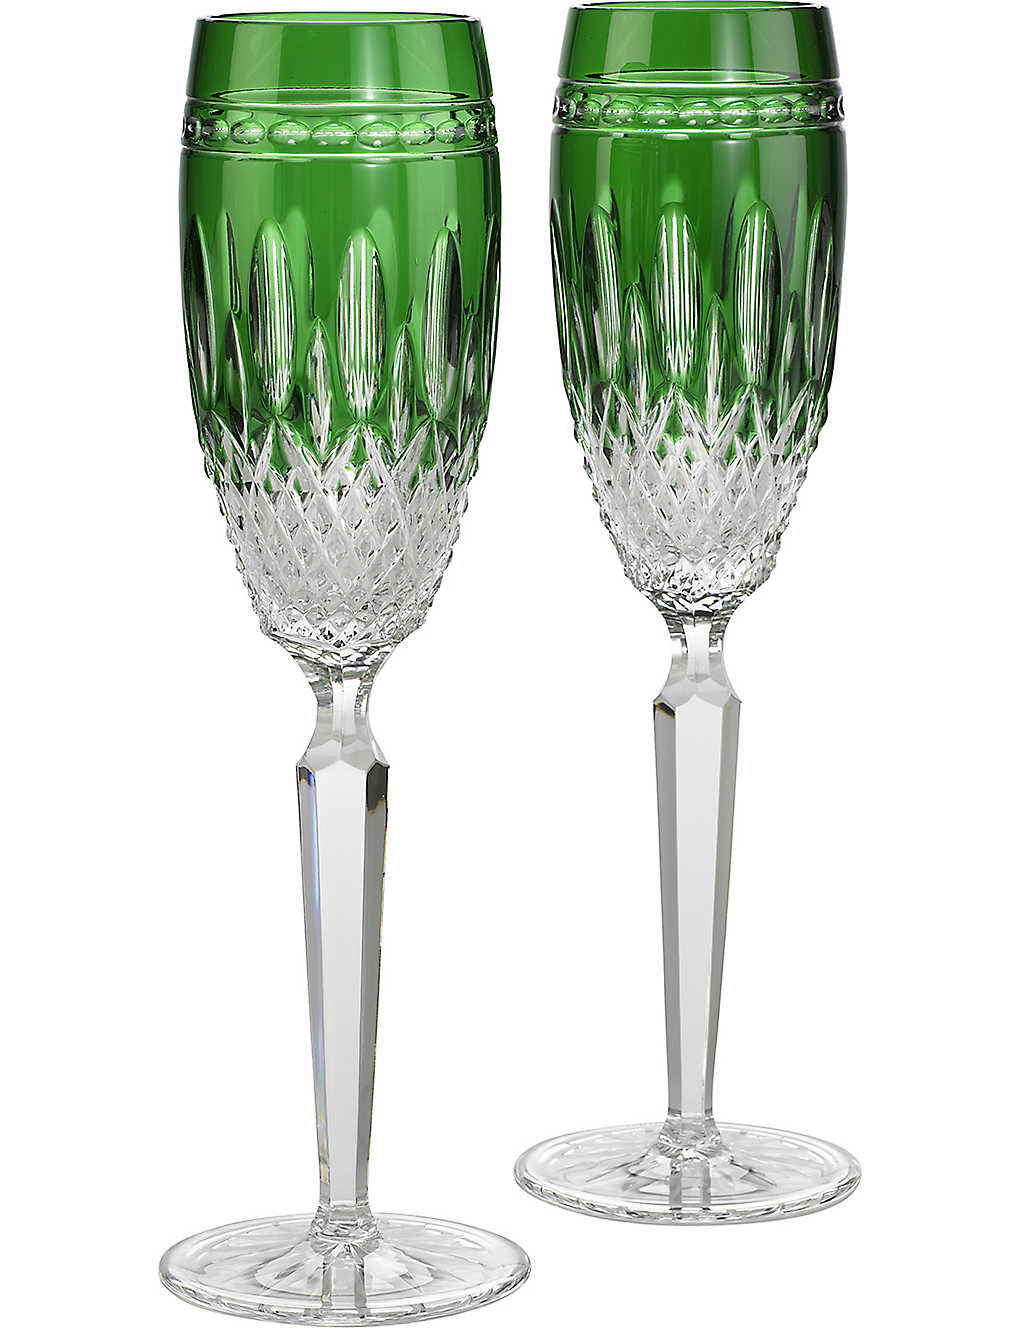 WATERFORD: Clarendon emerald champagne flutes set of two